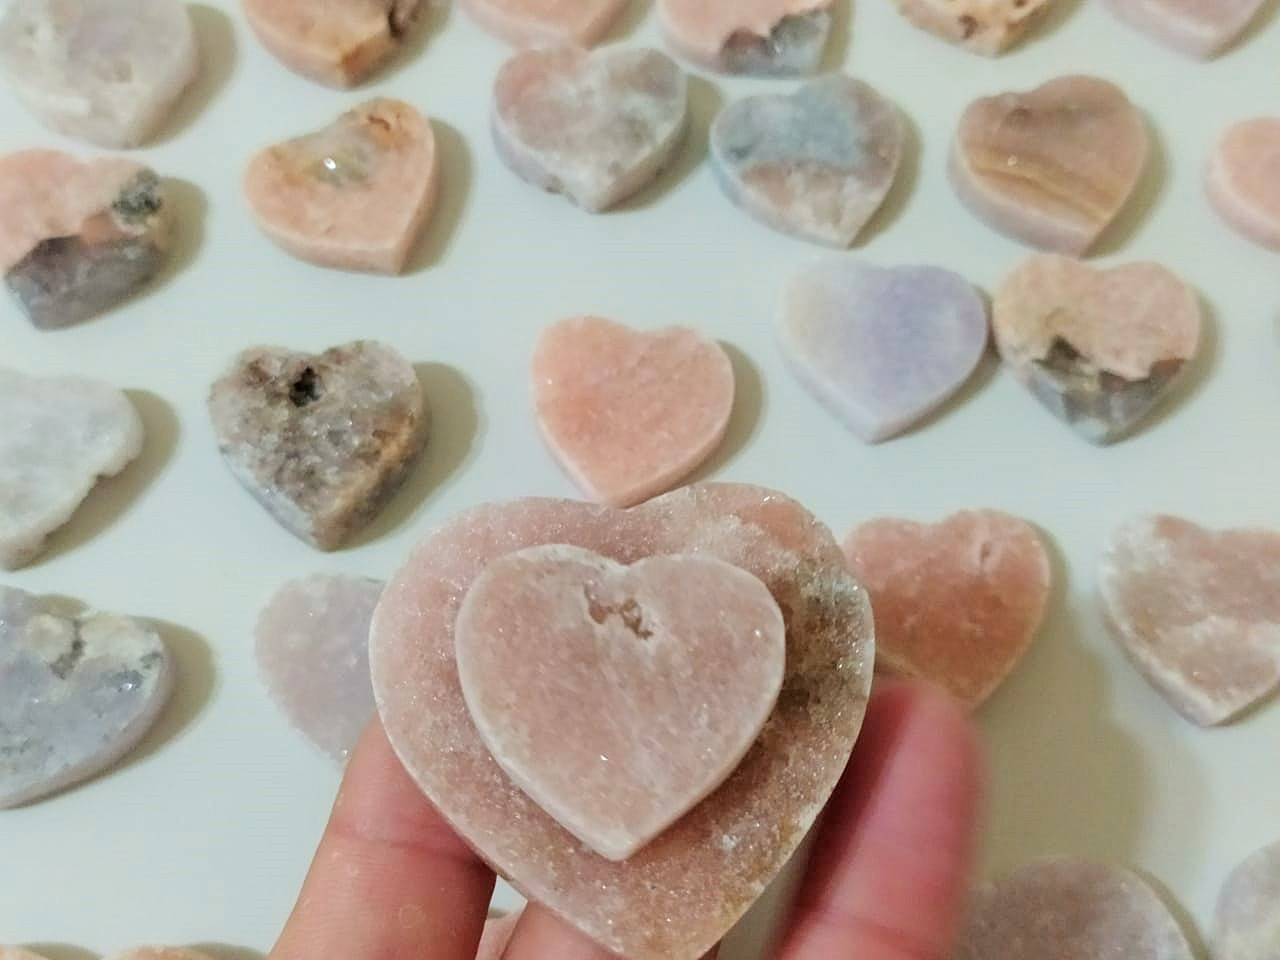 Stones from Uruguay - PINK AMETHYST CLUSTER HEARTS - PINK AMETHYST HEARTS -  ROSE AMETHYST HEARTS